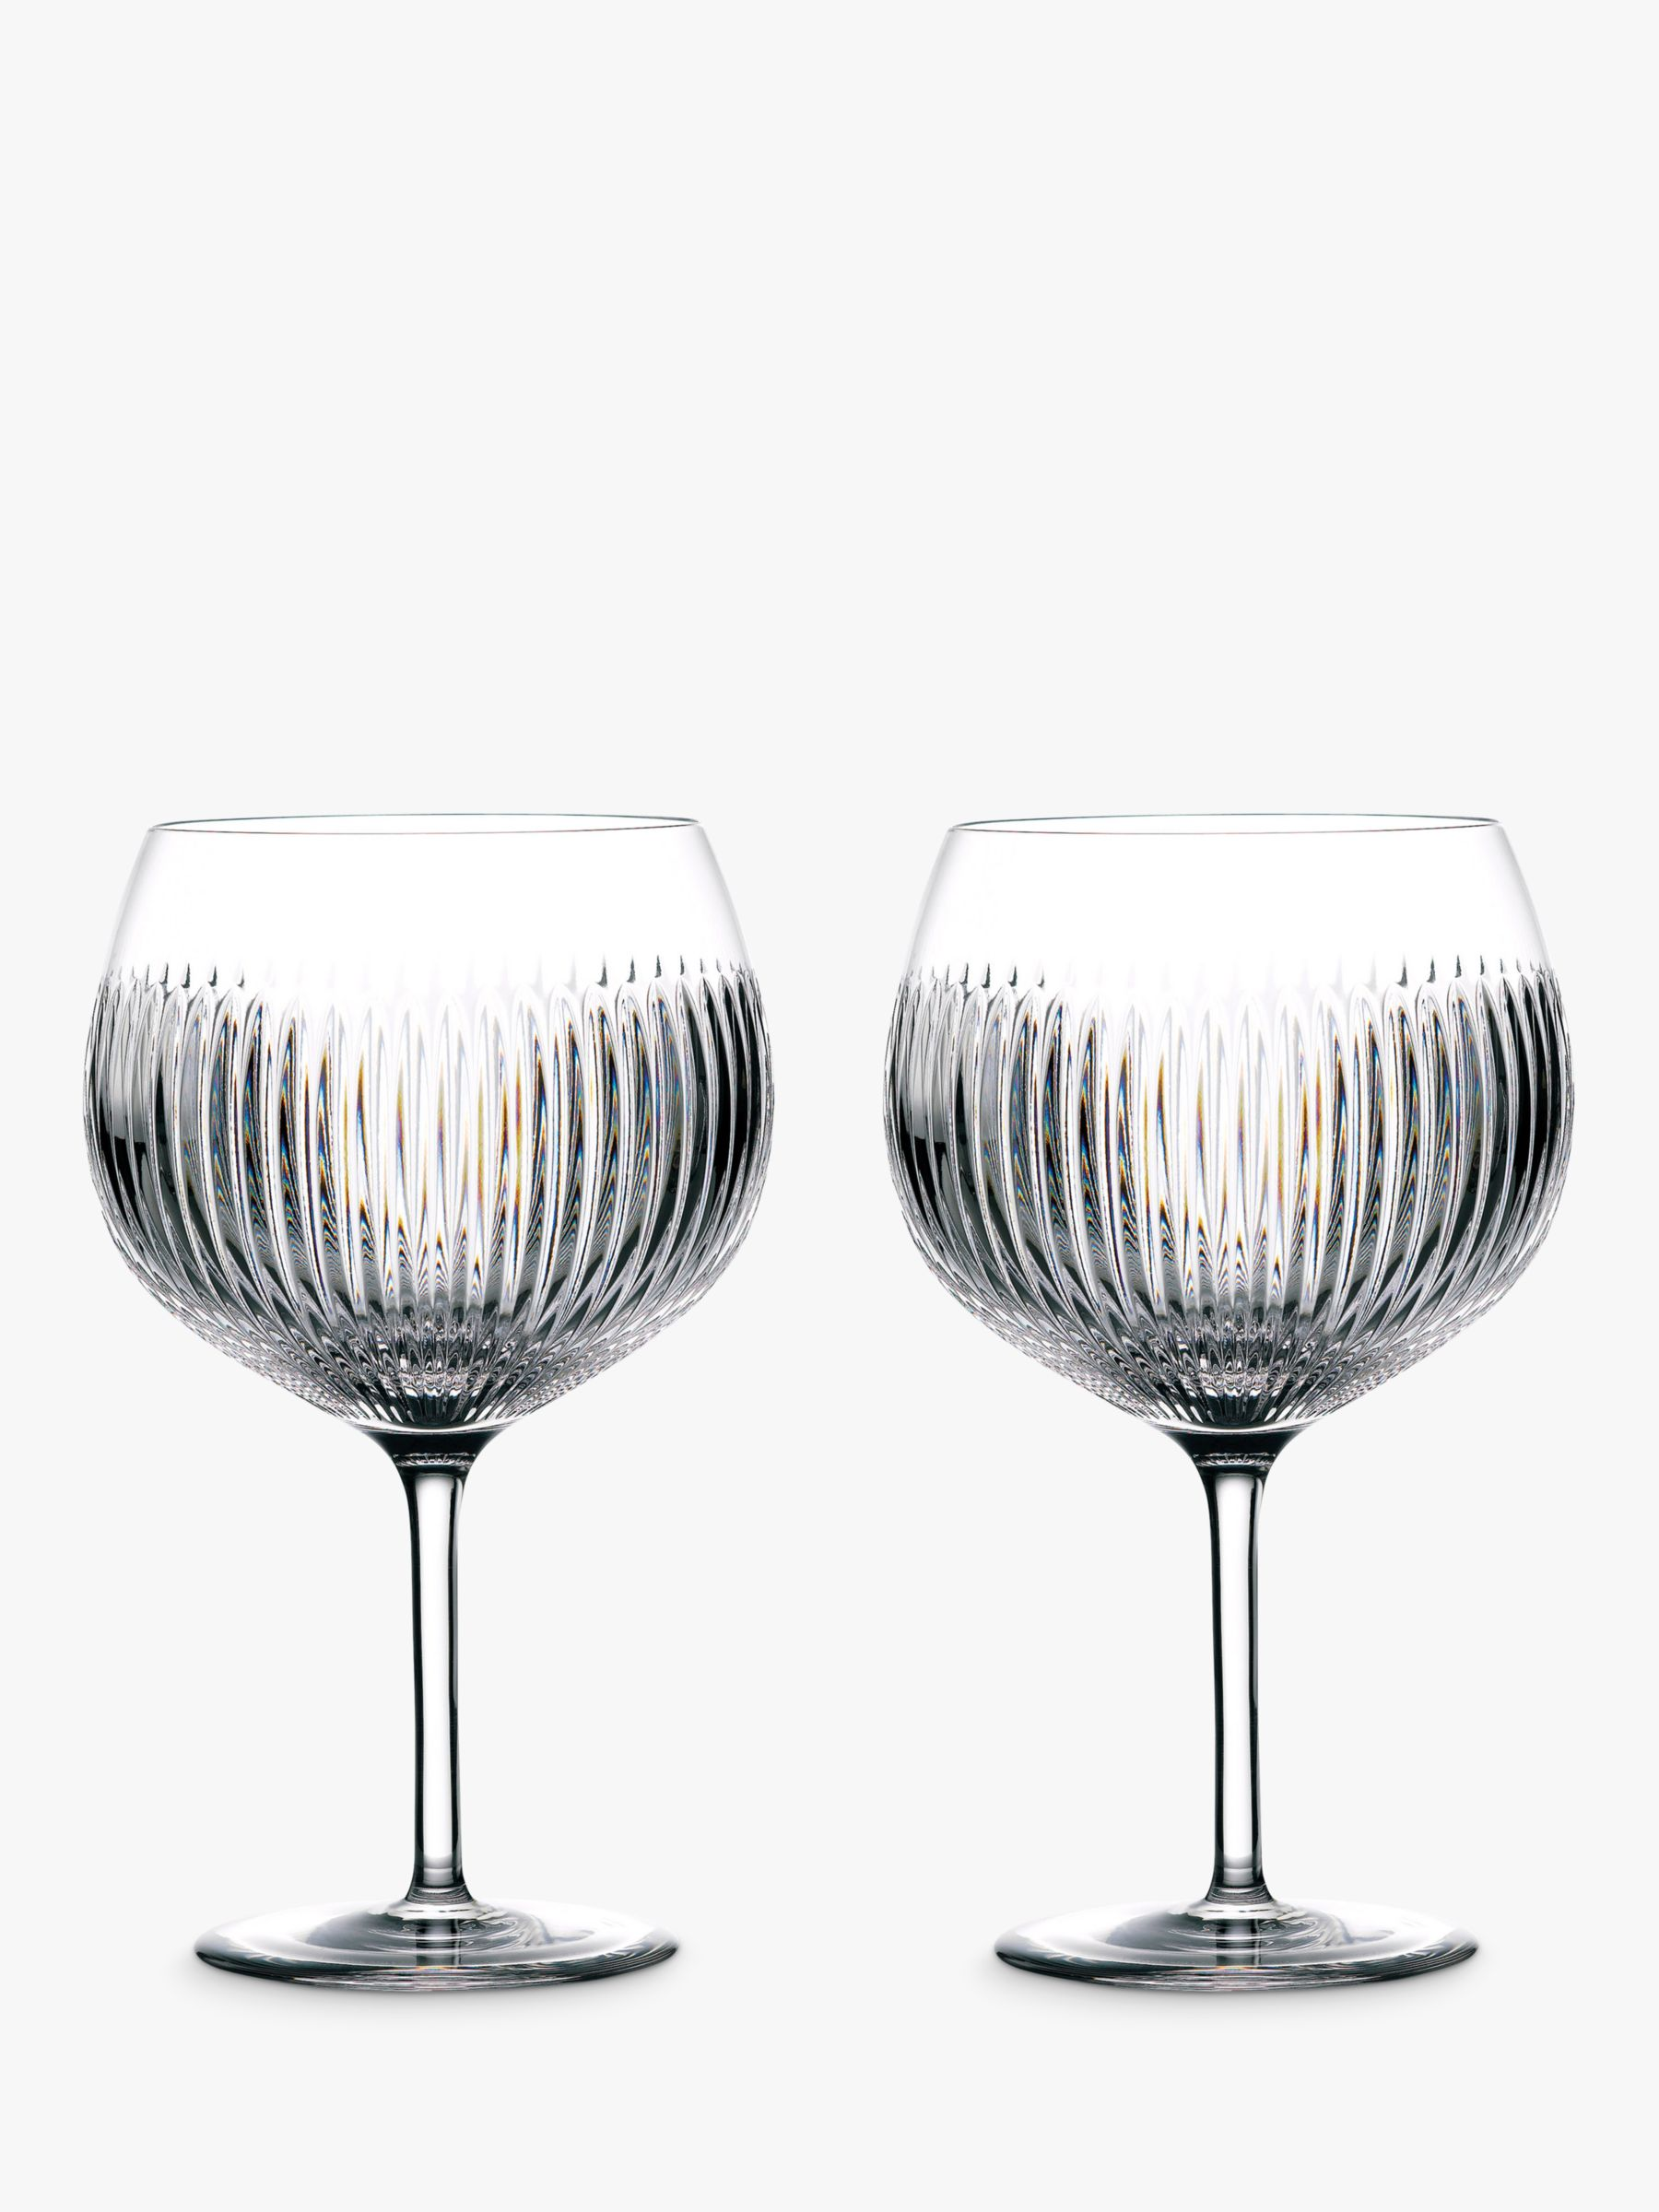 Waterford Waterford Gin Journeys Aras Balloon Glasses, Set of 2, 550ml, Clear